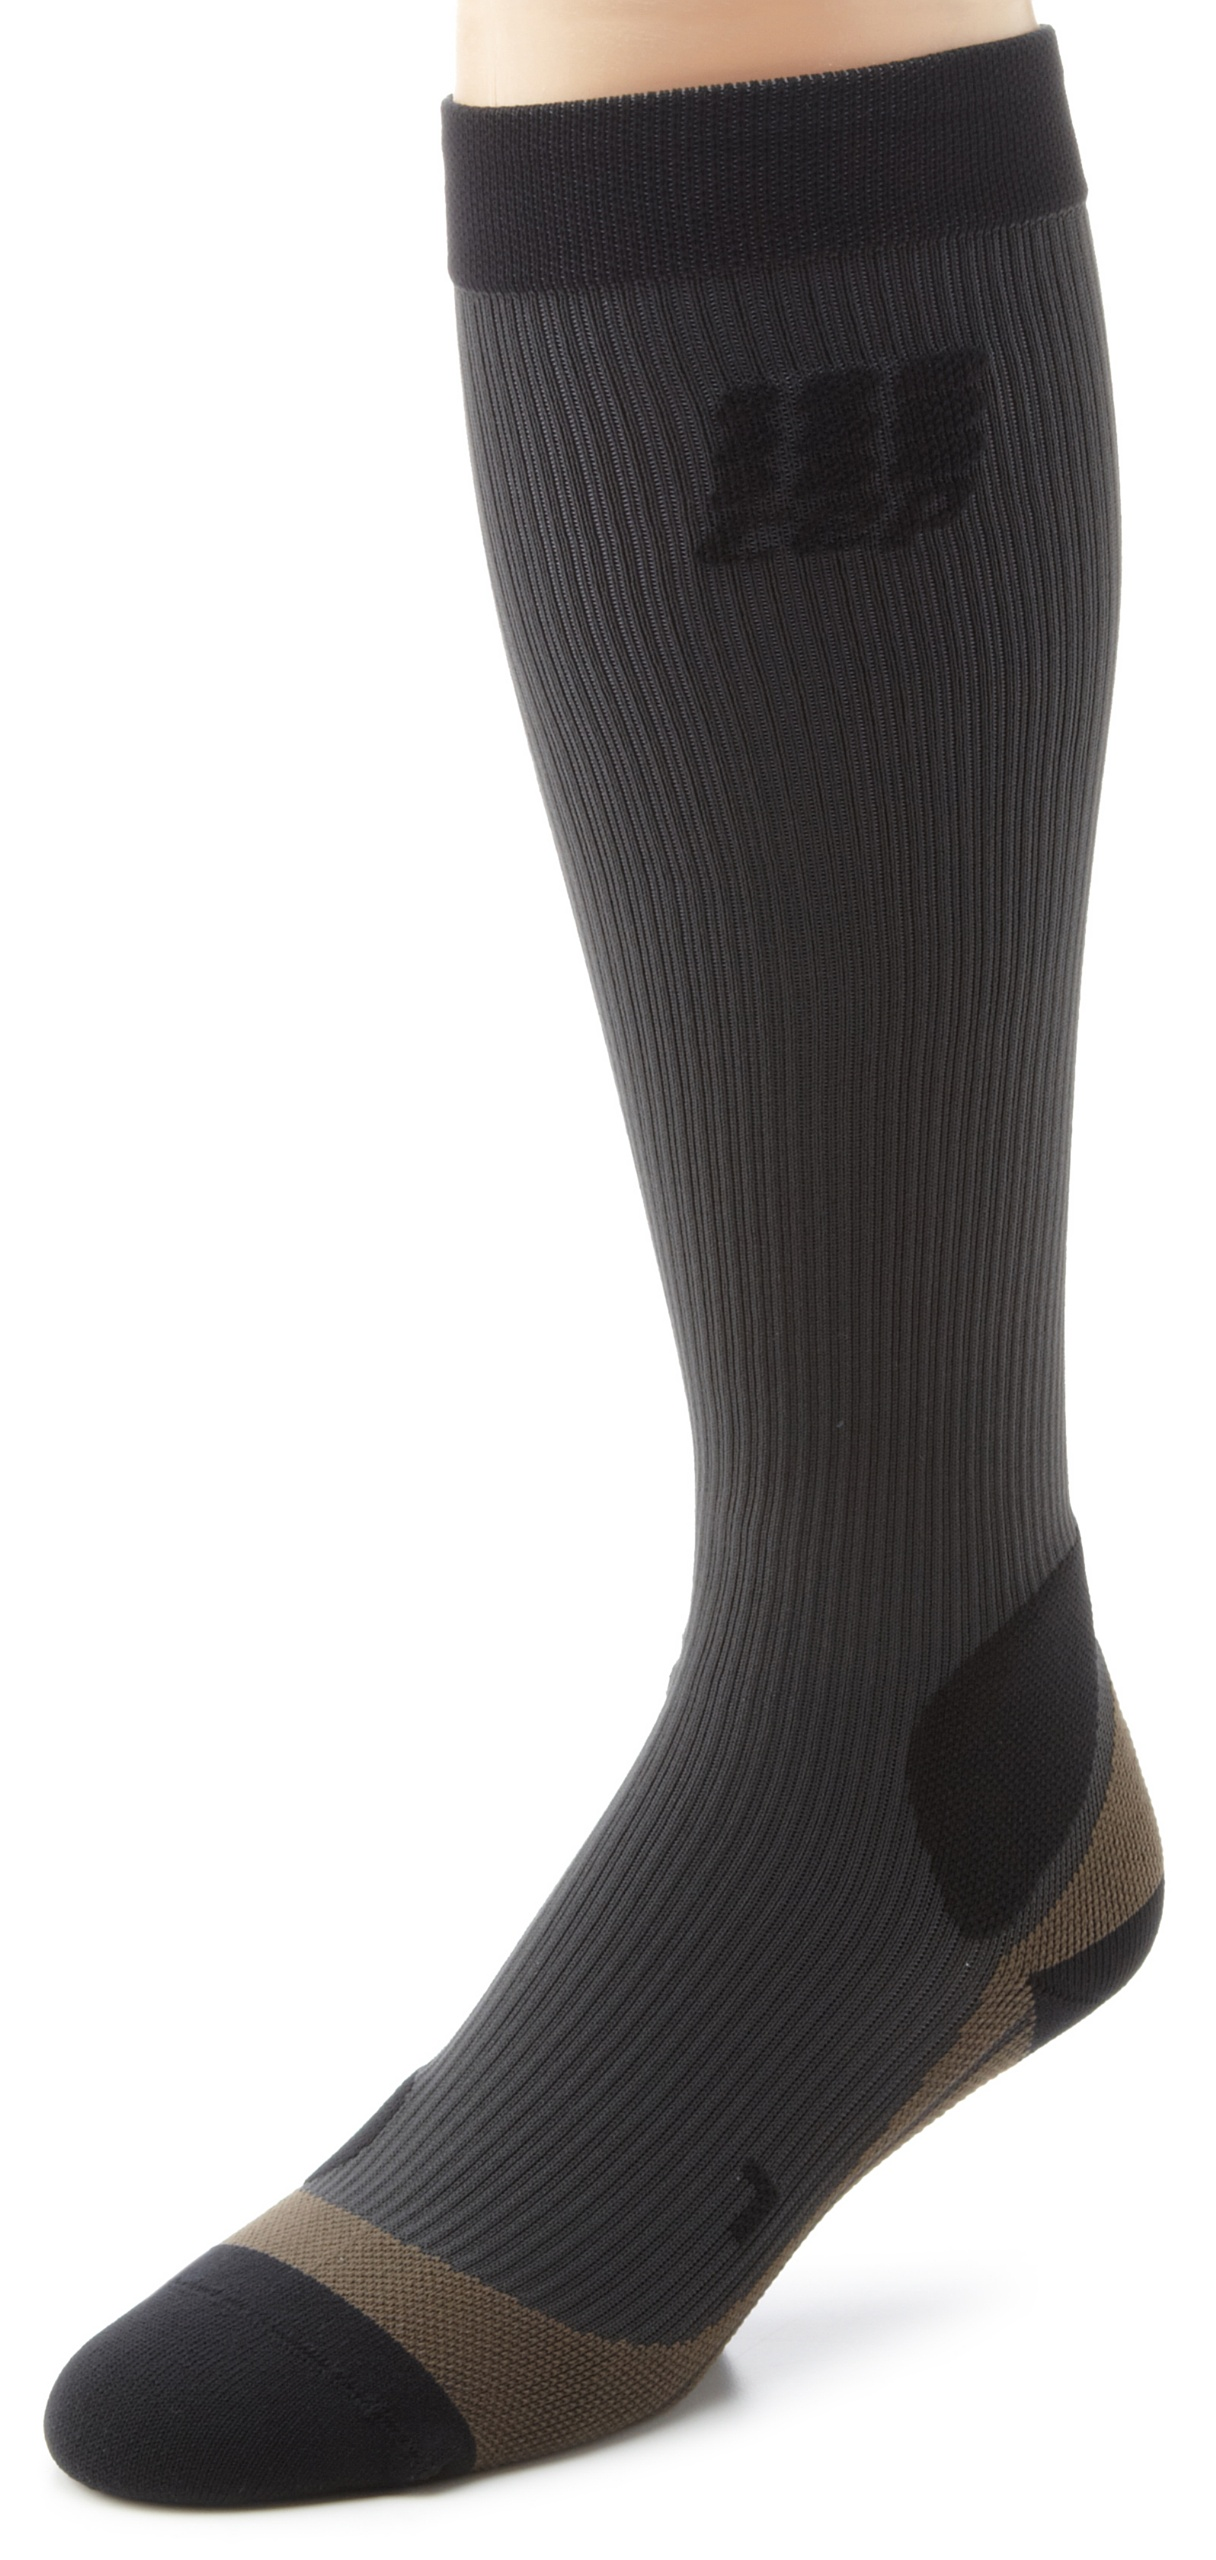 CEP Womens Outdoor Compression Socks : Grey Size III